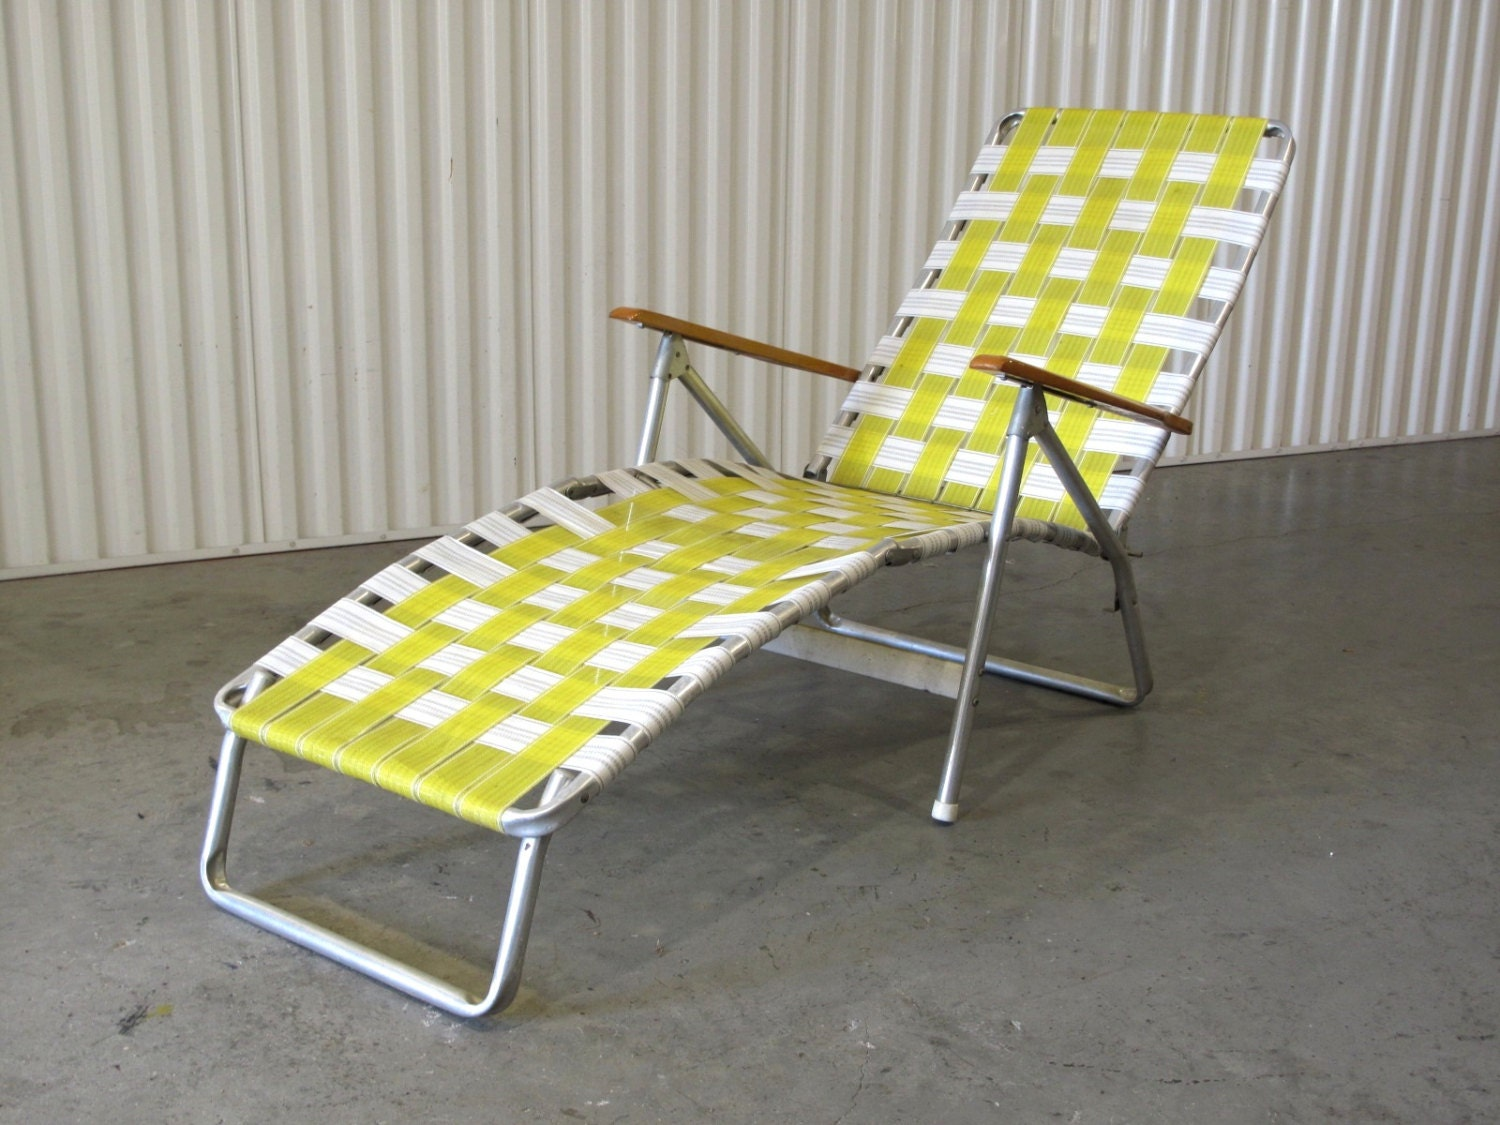 1960 s Webbed Lawn Chair Folding Beach Chair Lounge by CathodeBlue